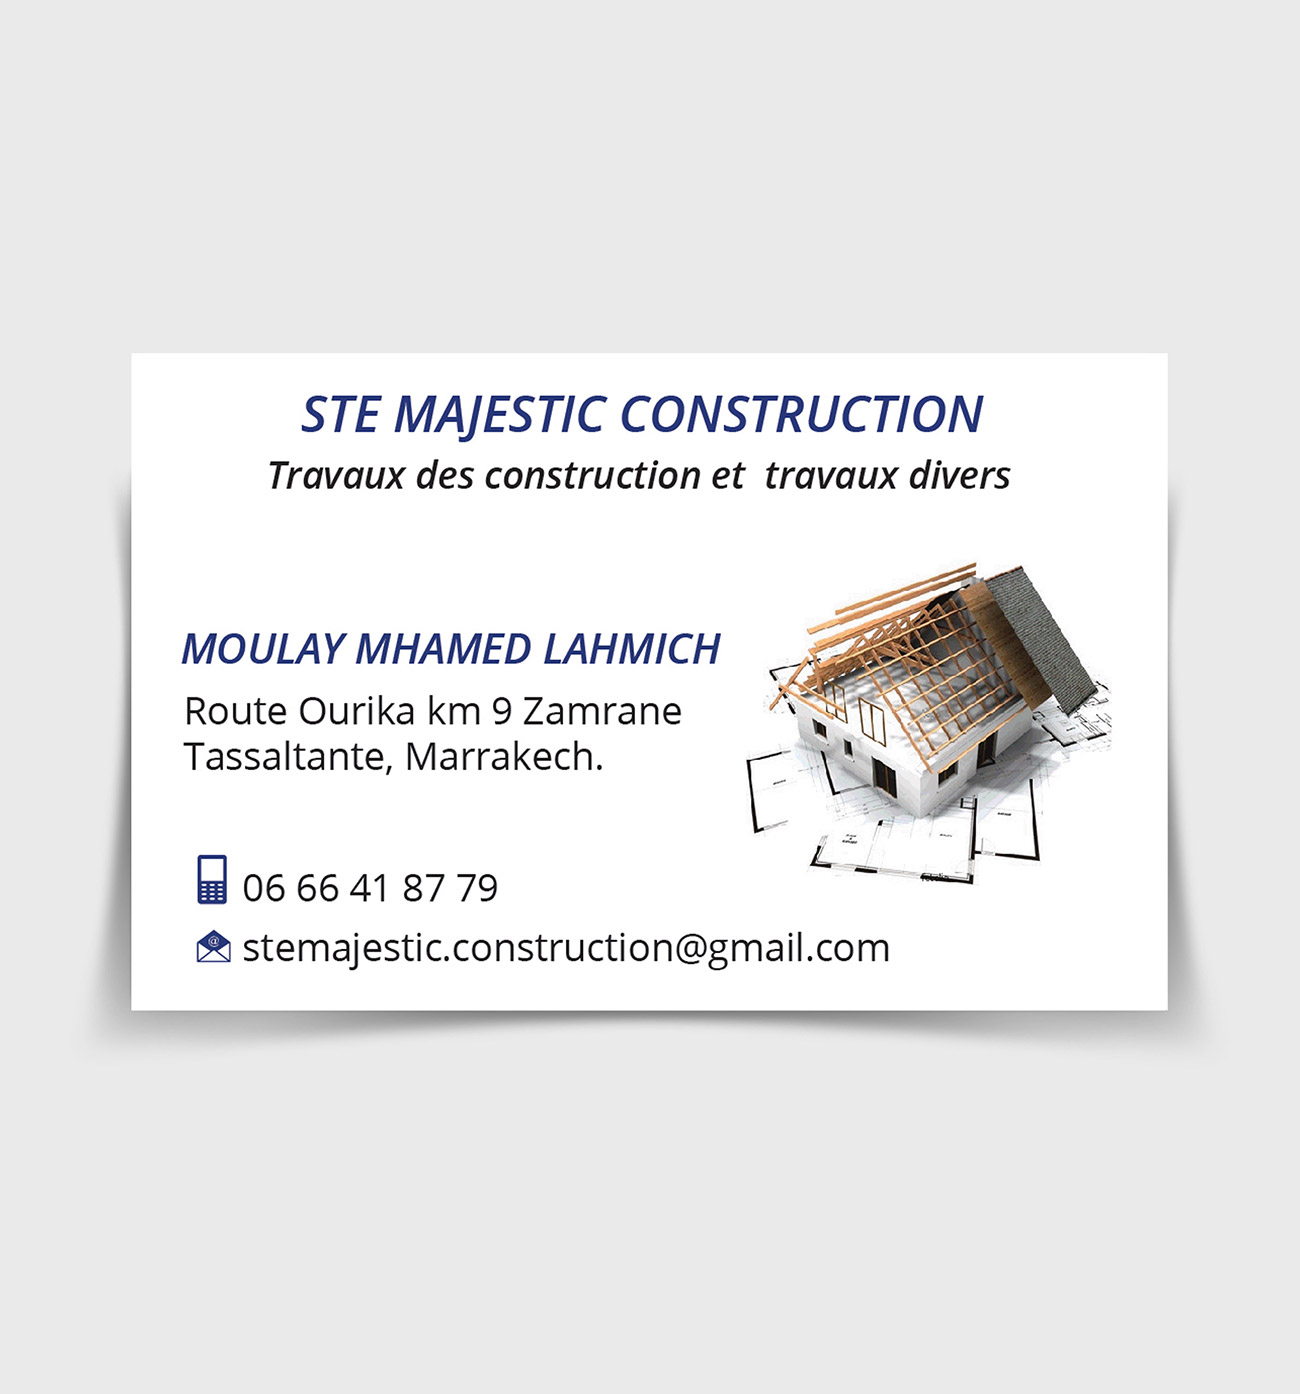 carte visite majestic construction